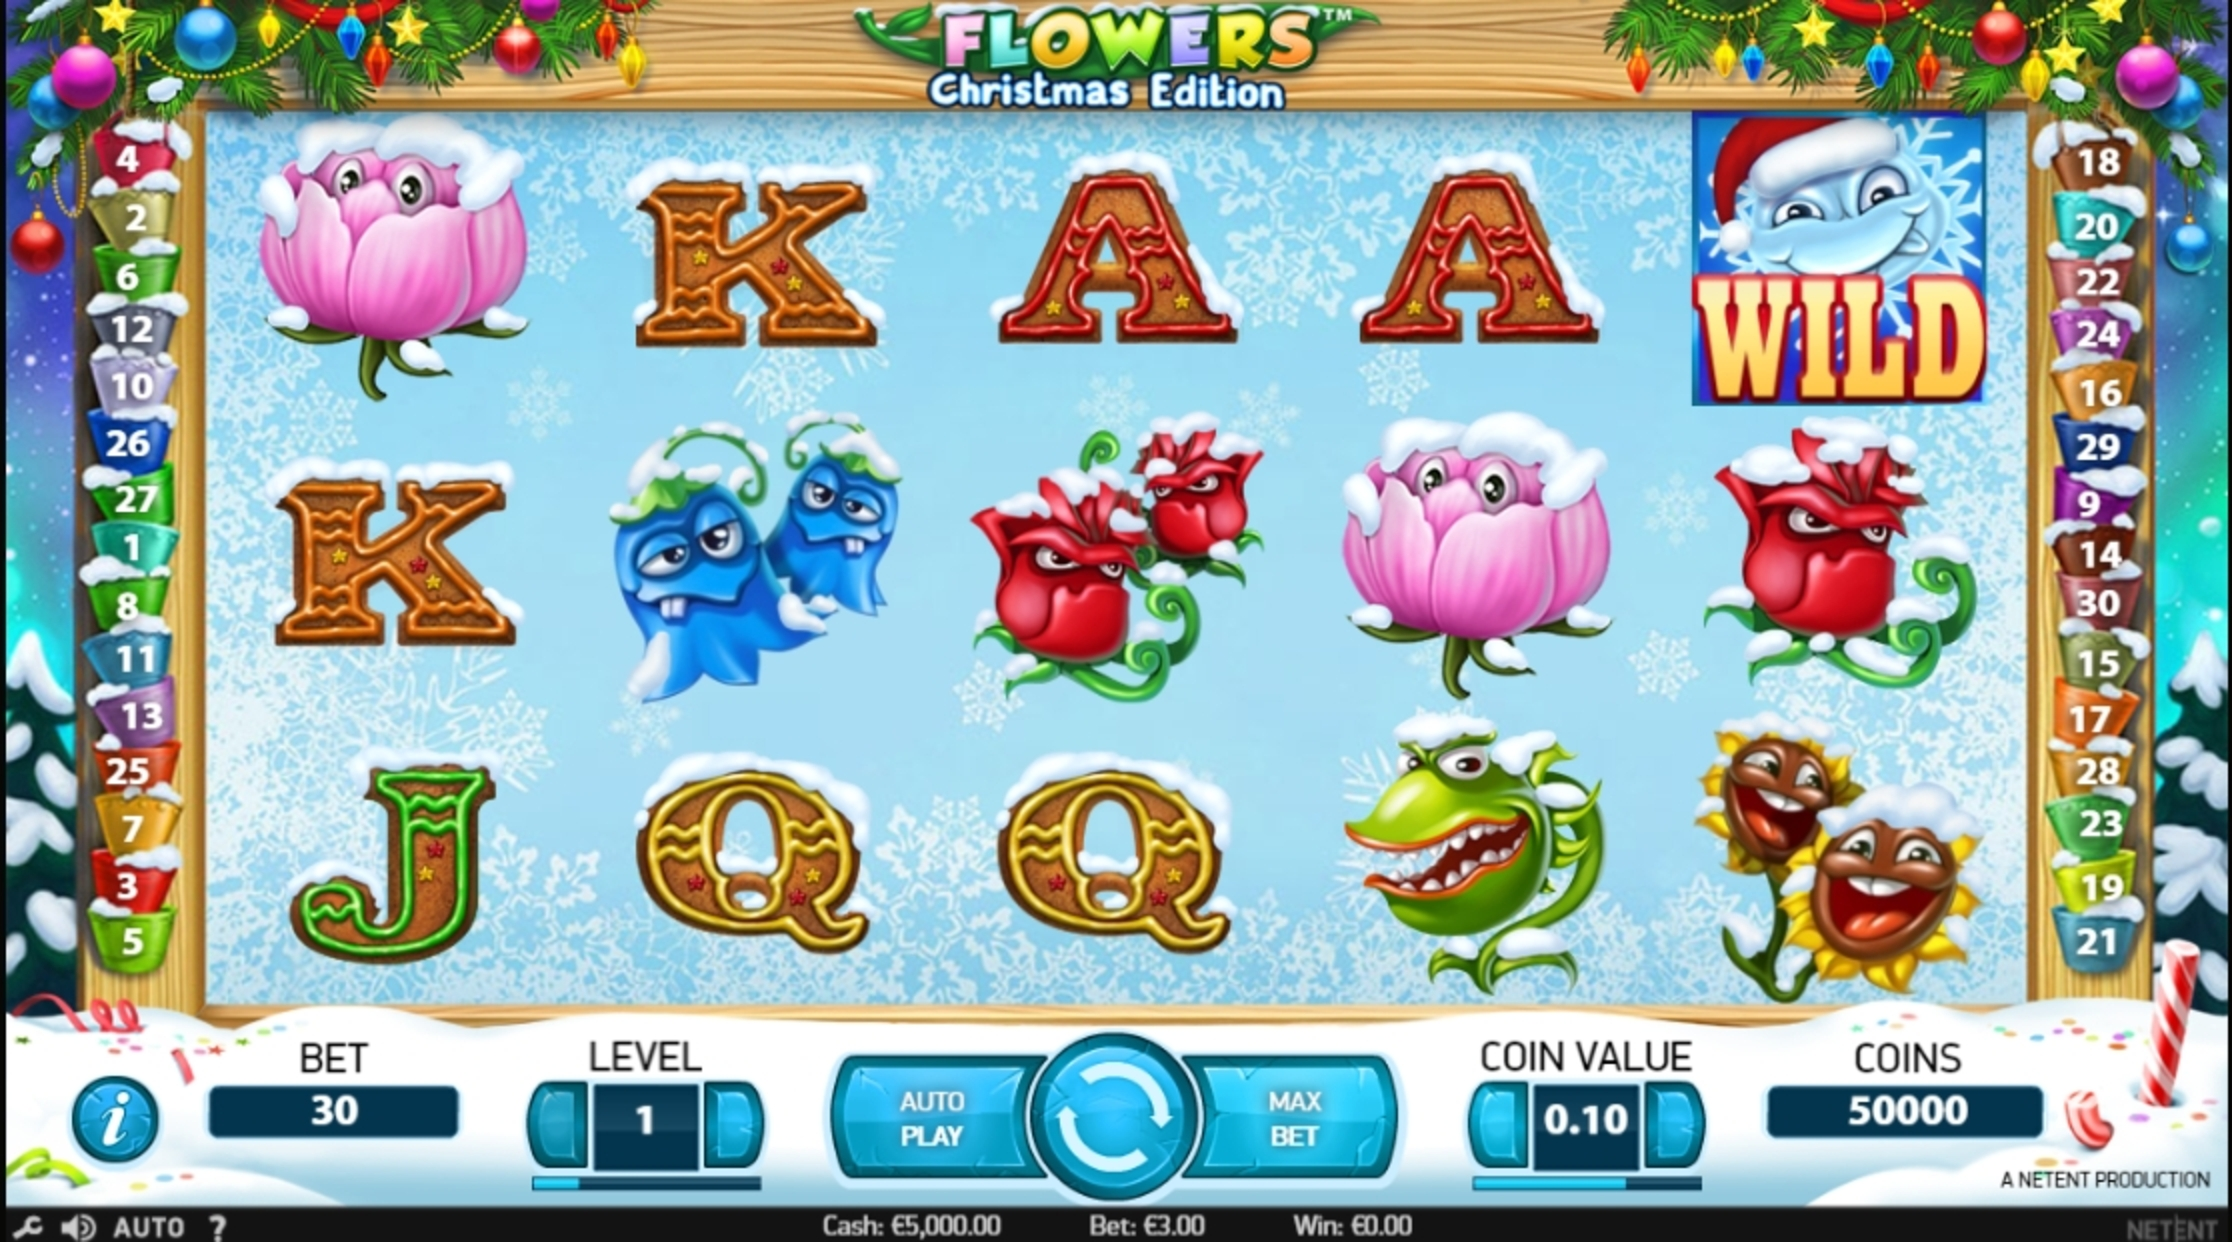 Reels in Flowers Christmas Edition Slot Game by NetEnt